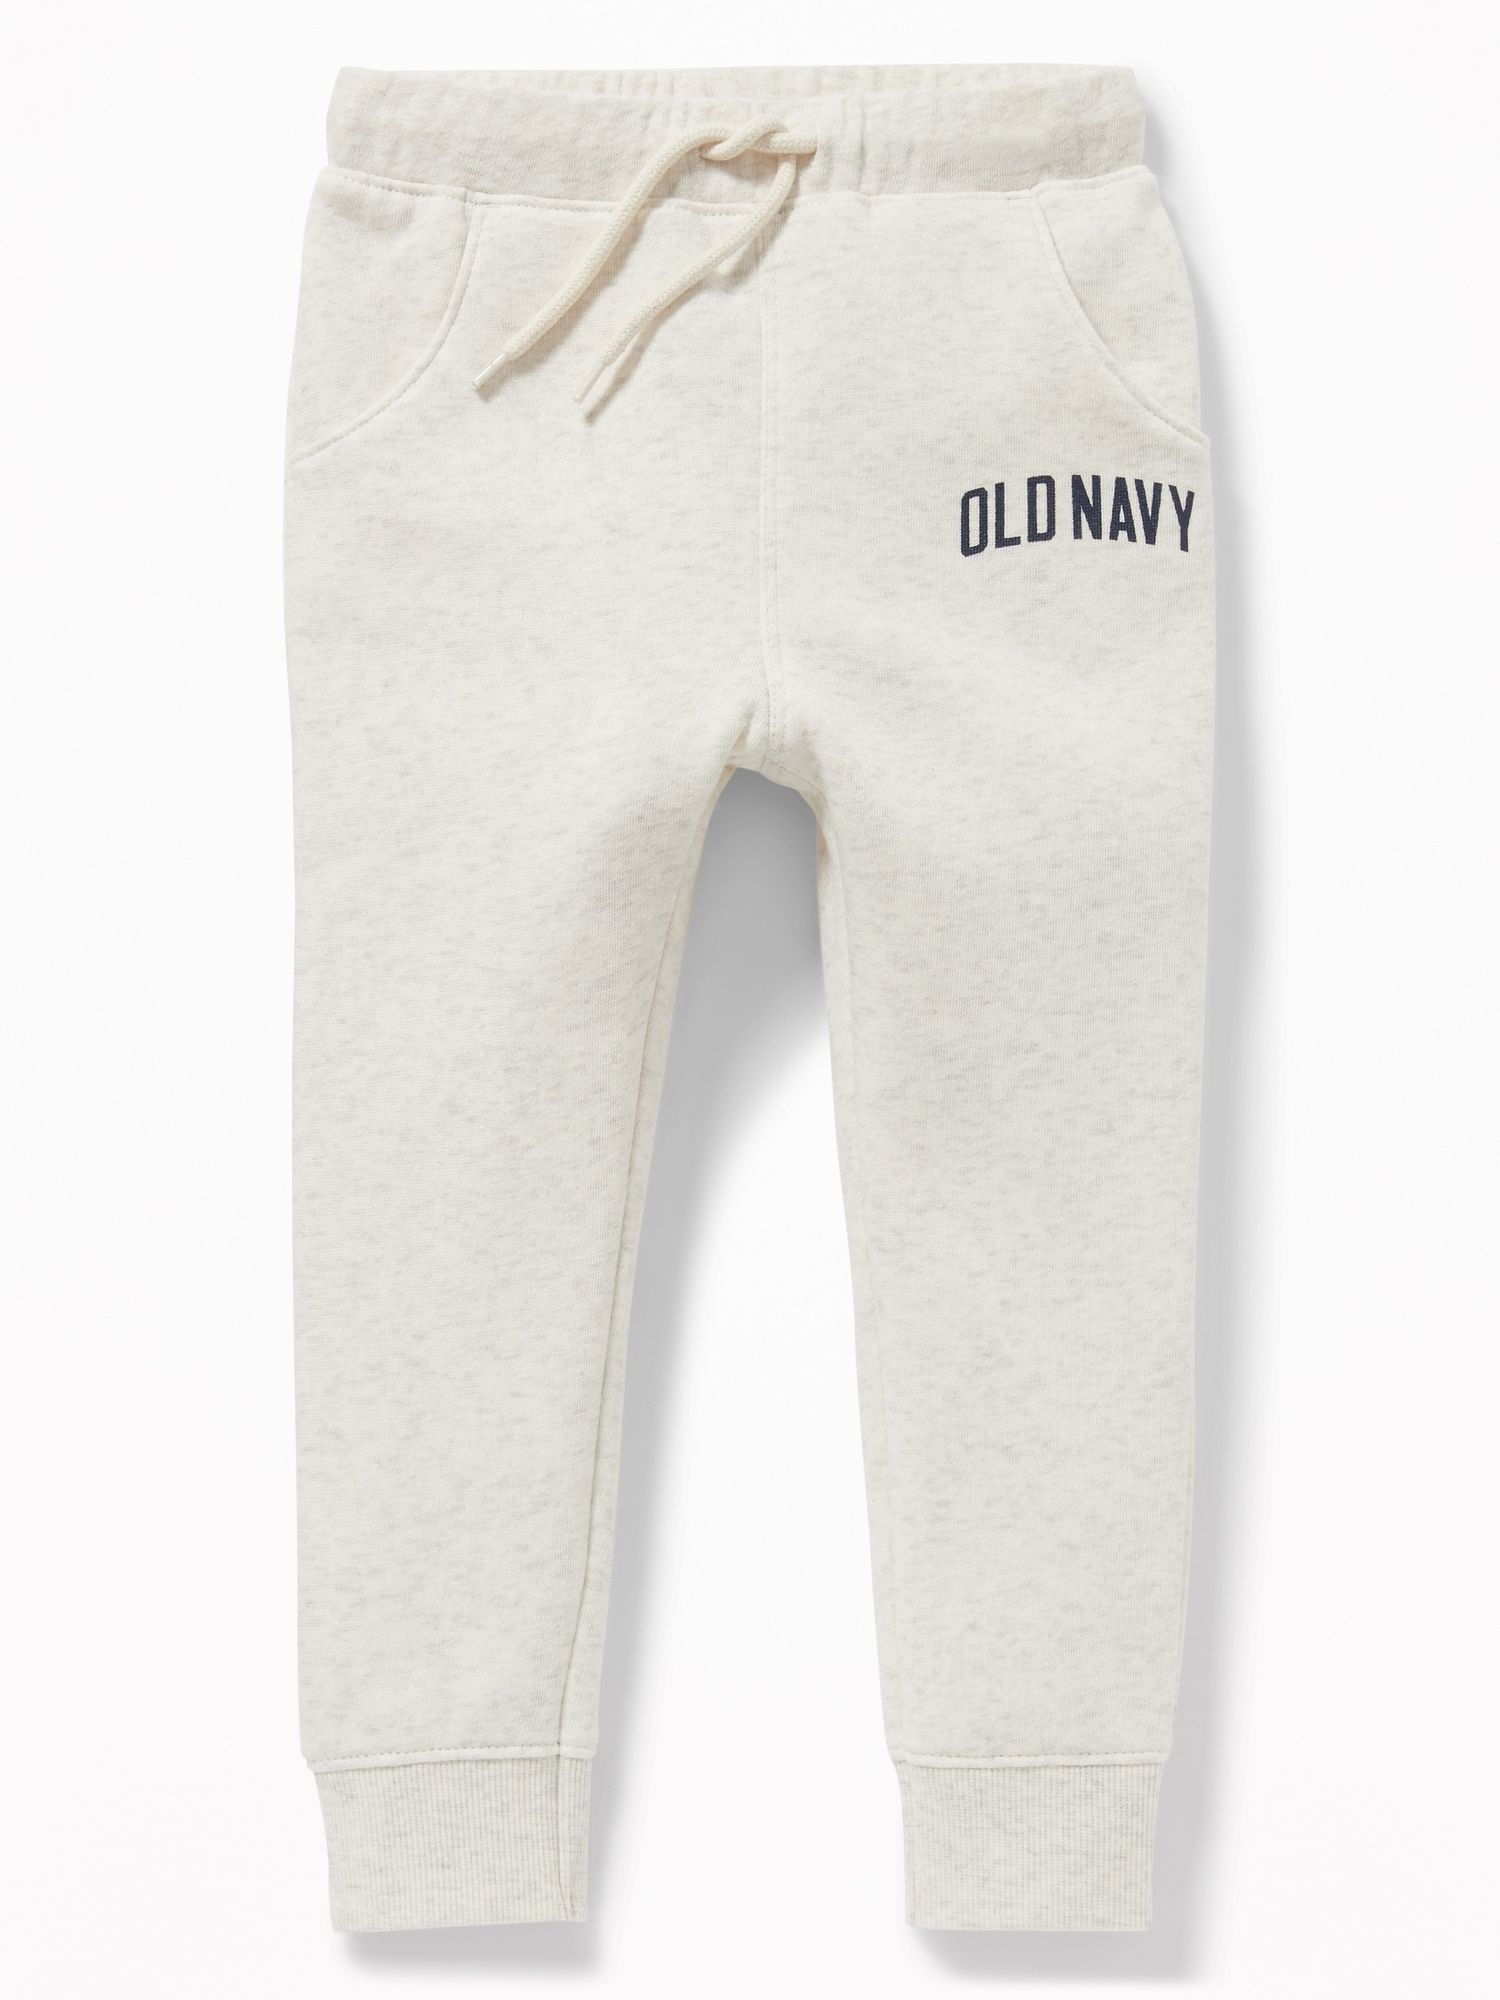 LogoGraphic Joggers for Toddler Girls Old Navy Old